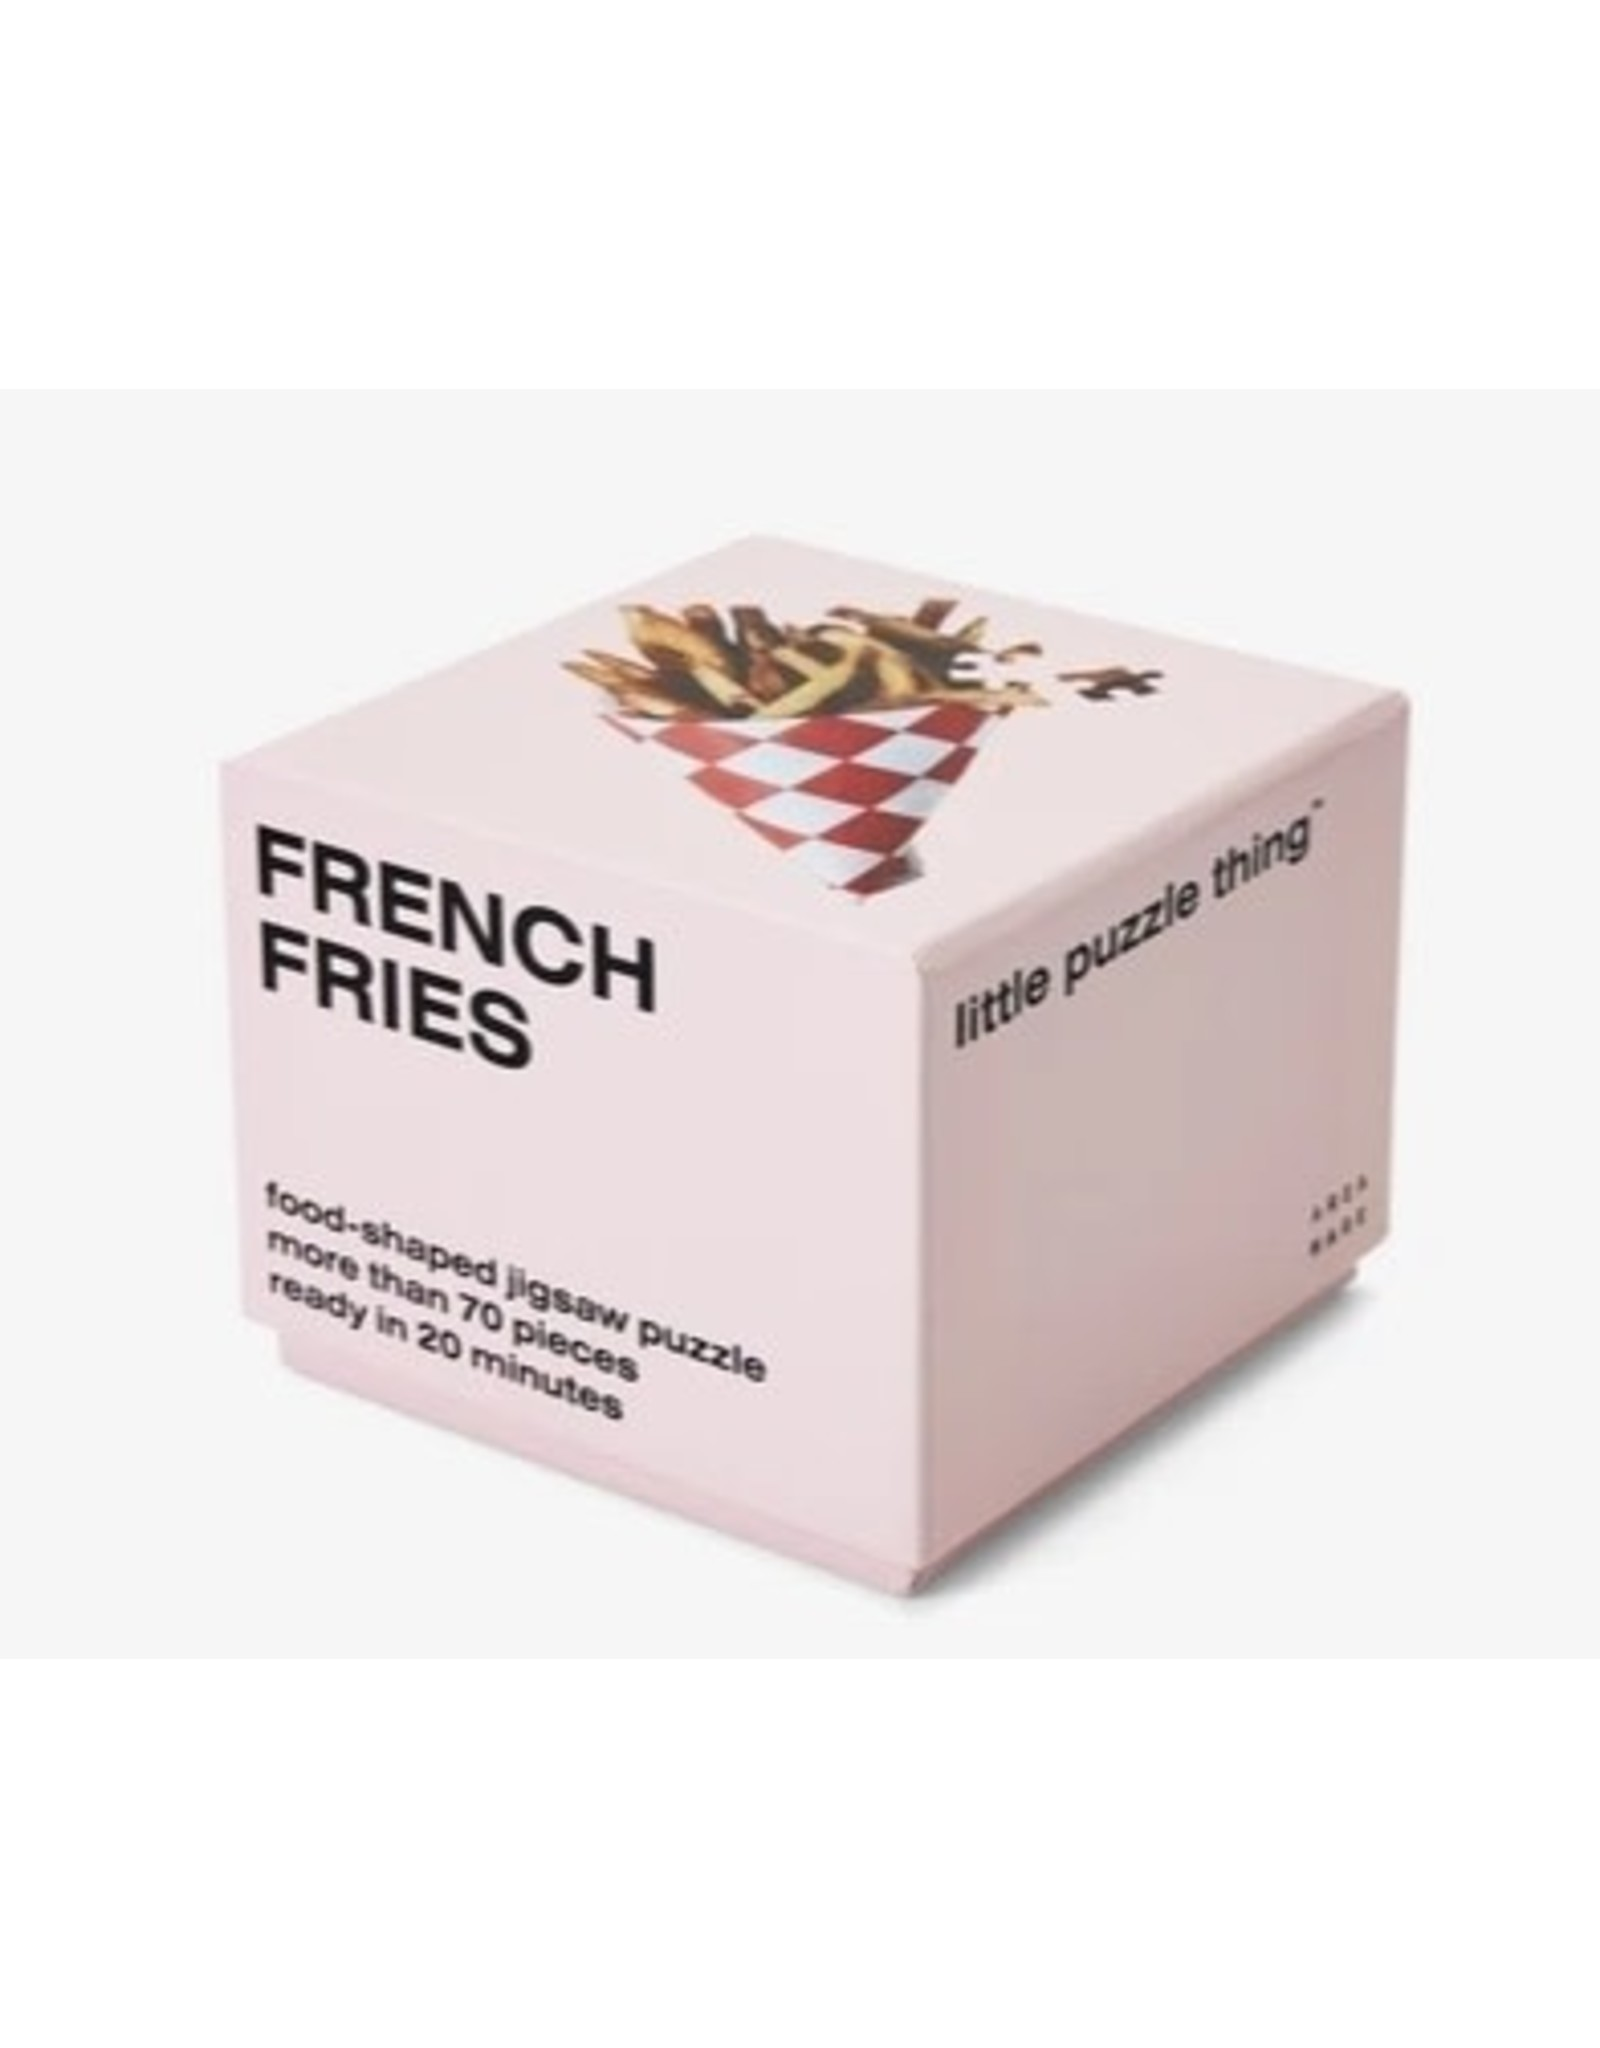 Little Puzzle Thing - French Fries